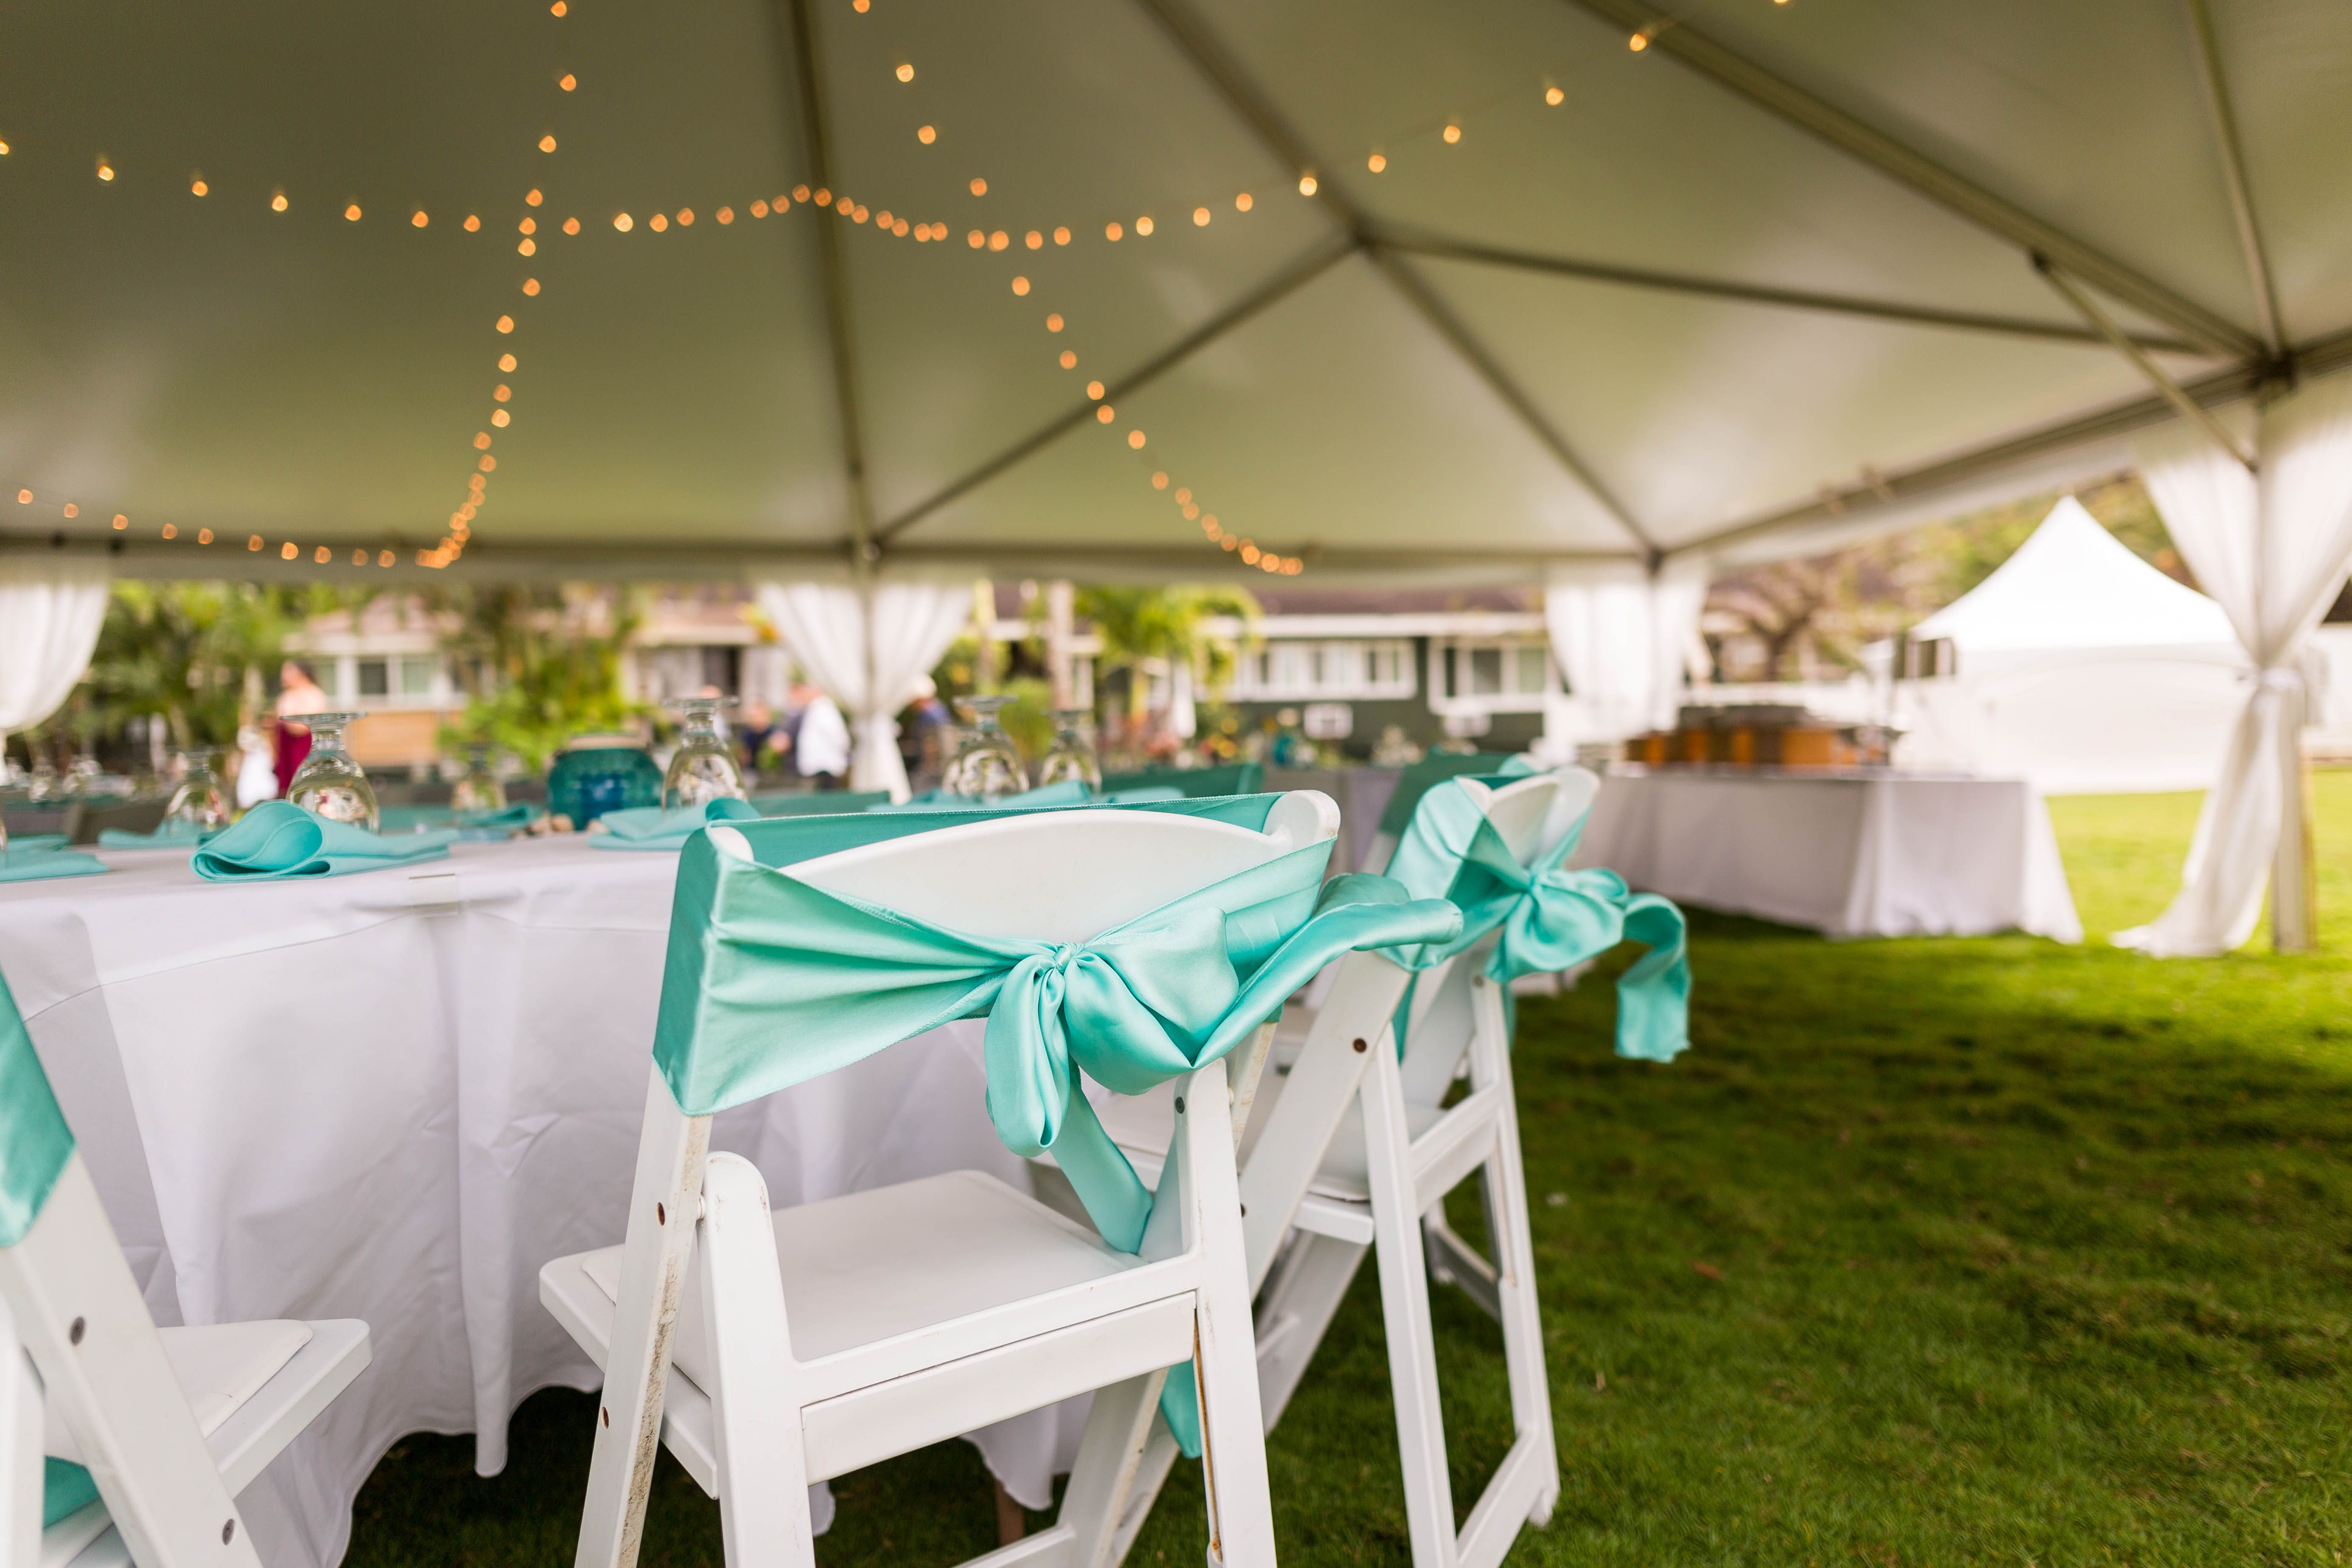 Tented Outdoor Wedding Venue On The North S Of Oahu At Loulu Palm Estate Adorable Reception With Turquoise Blue Bows White Folding Chairs